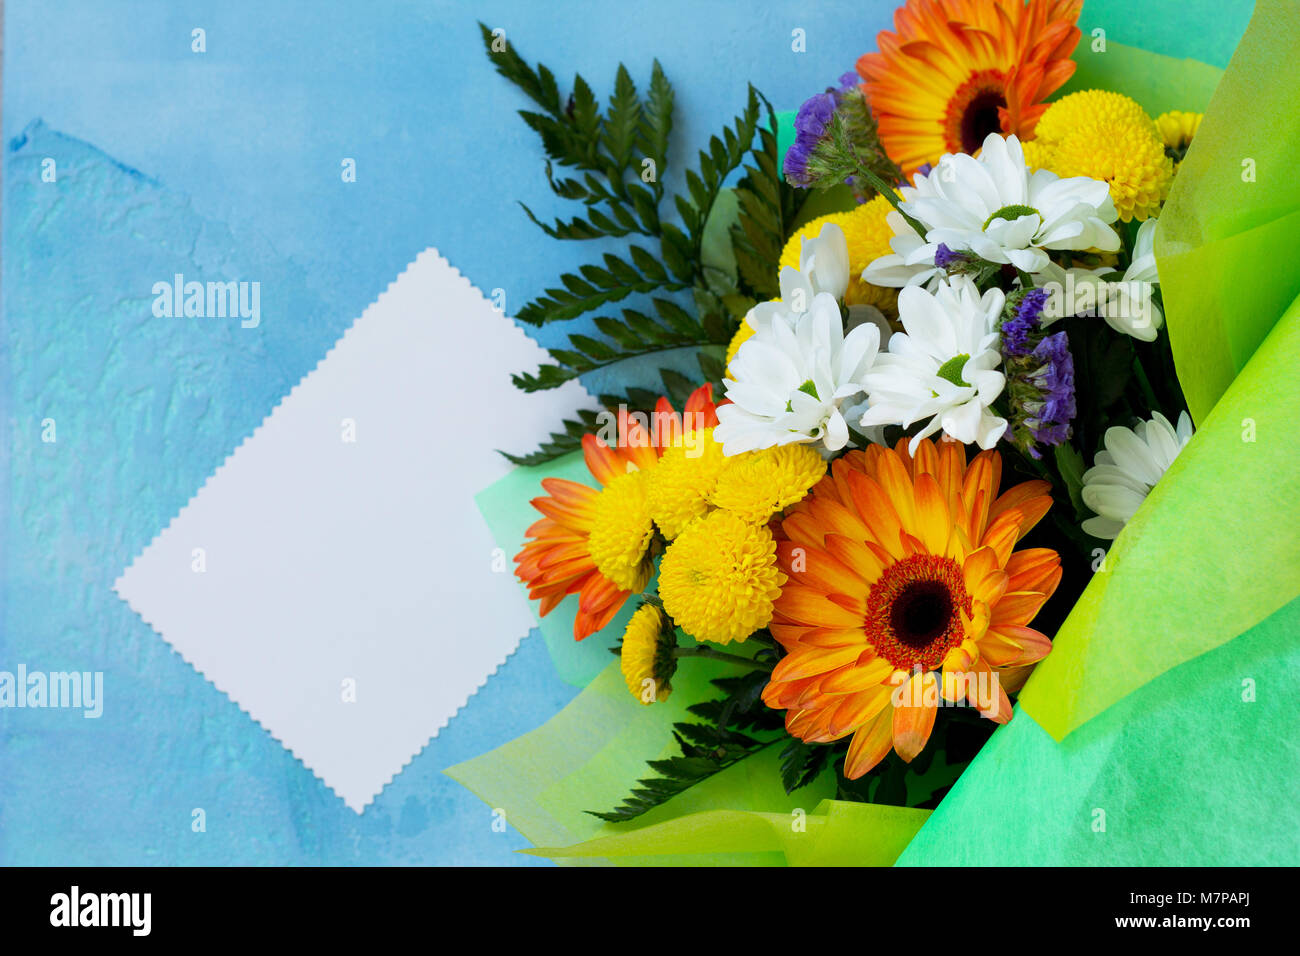 Romantic Spring Flowers Stock Photos Vintage Story Flower Japanese Chrysantemum 2 A Wedding Or Background Mothers Day Bouquet Of Gerbera With Chrysanthemums And Present On